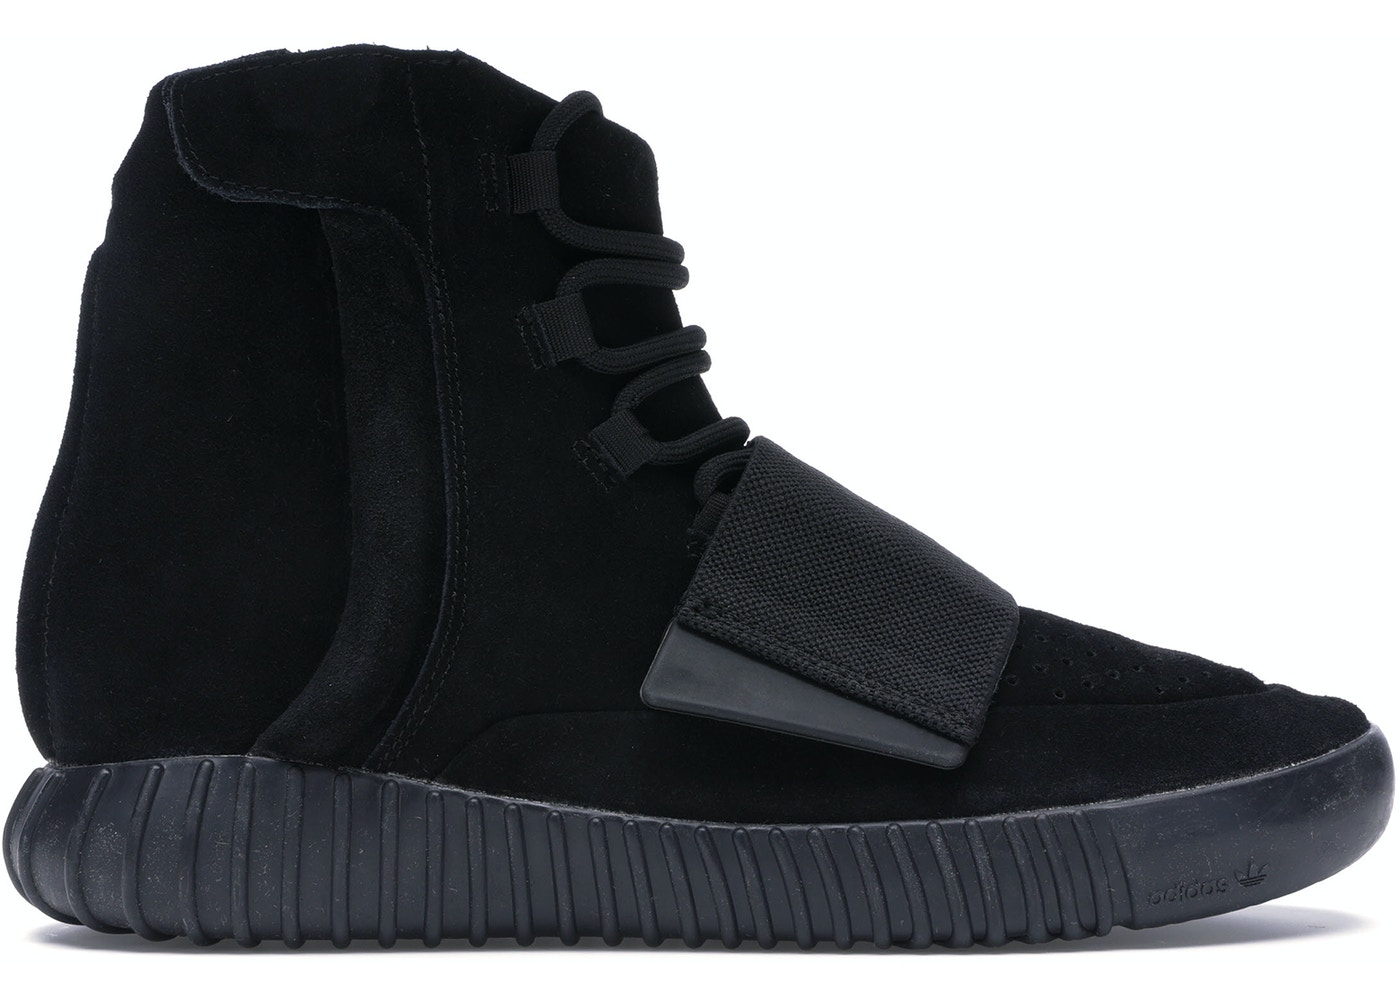 premium selection 8496c 2a9e1 Buy adidas Yeezy 750 Shoes & Deadstock Sneakers